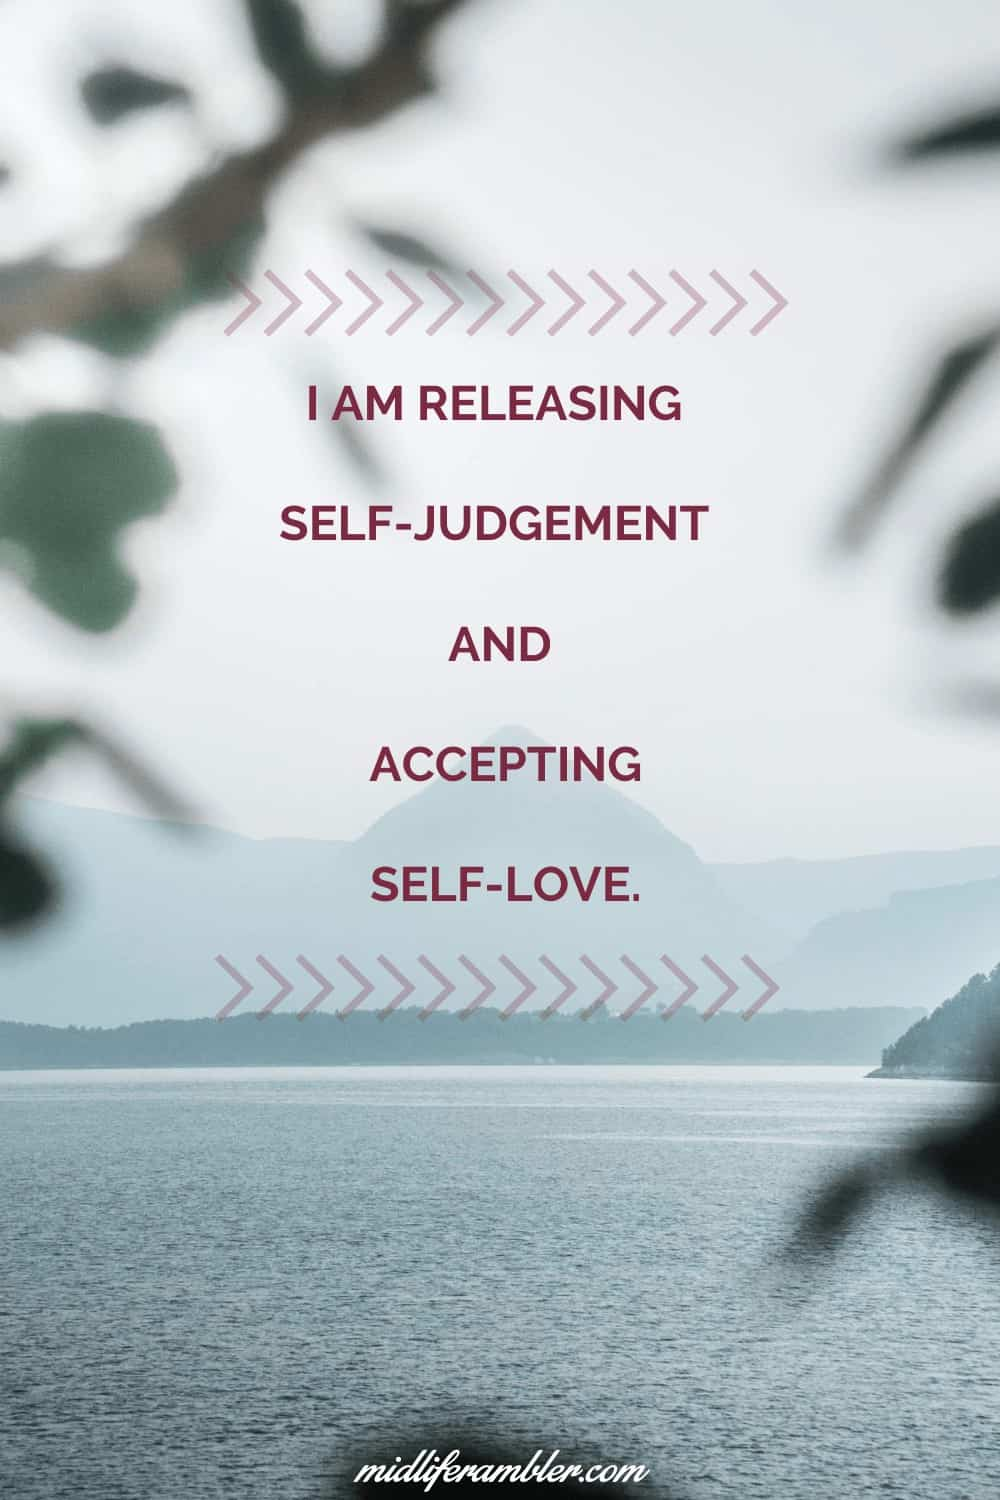 Affirmations for Self-Compassion - I am releasing self-judgement and accepting self-love.